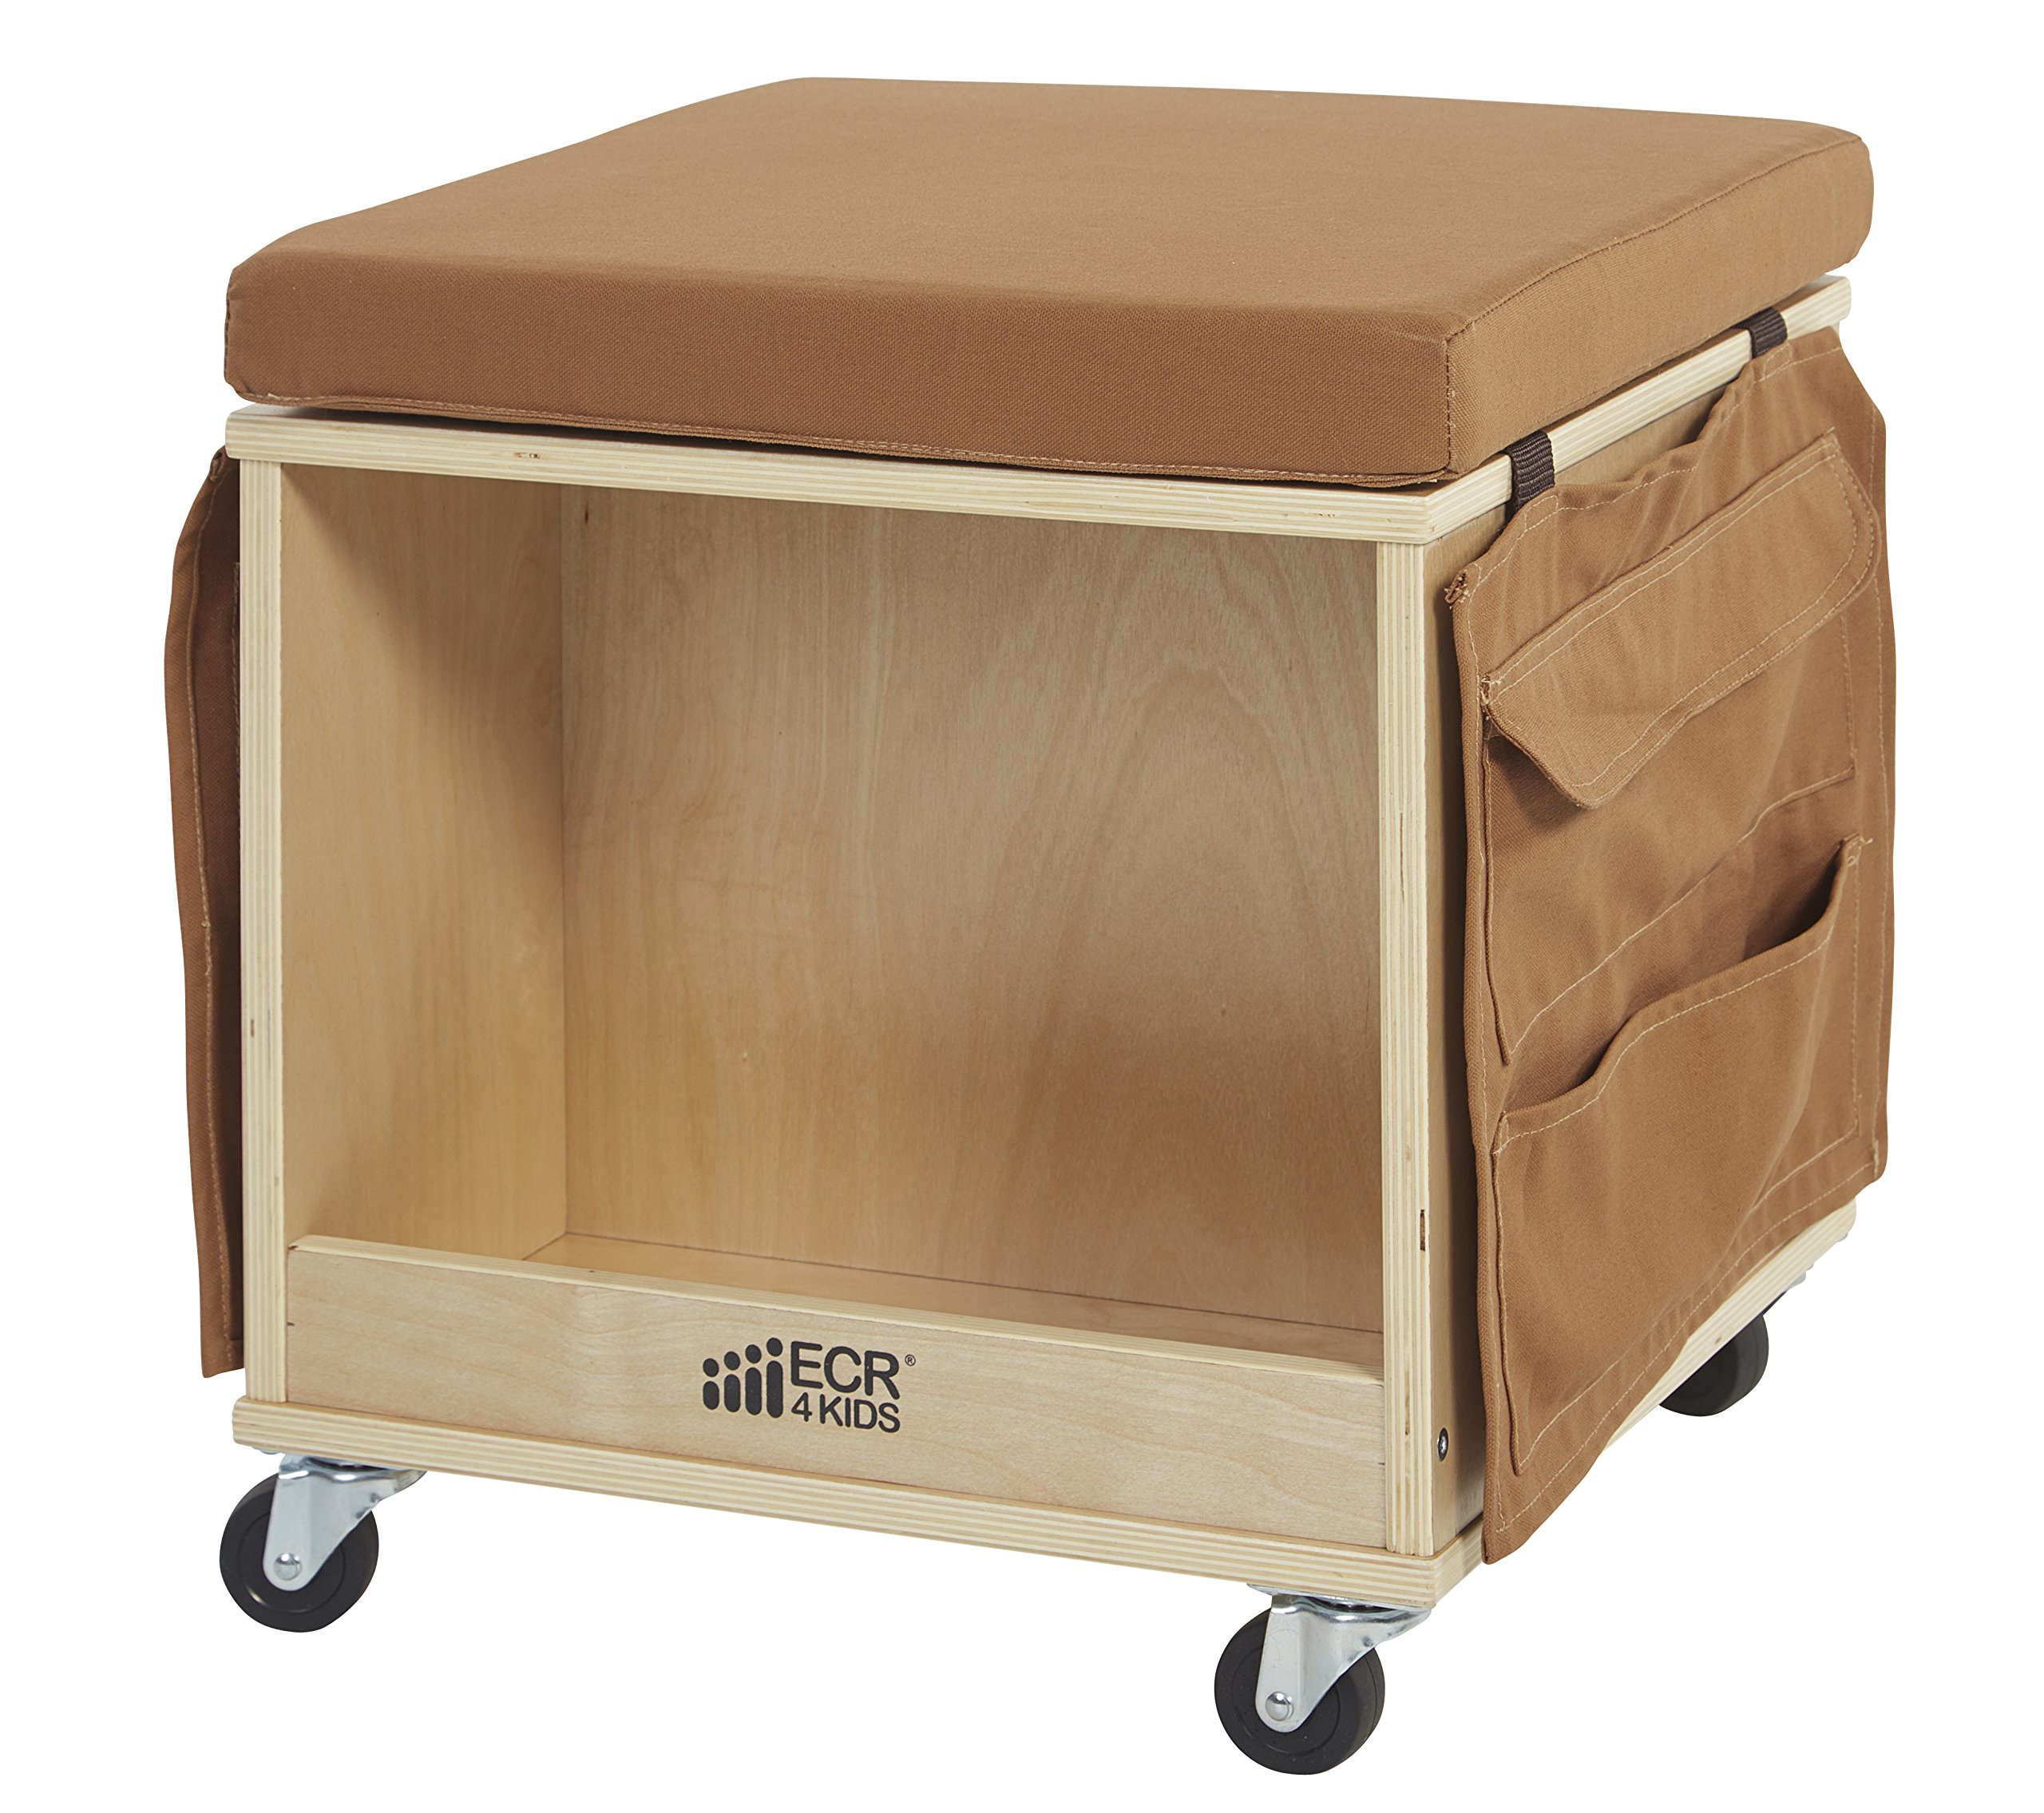 ECR4Kids Birch Hardwood and Canvas Mobile Teacher Stool with Storage